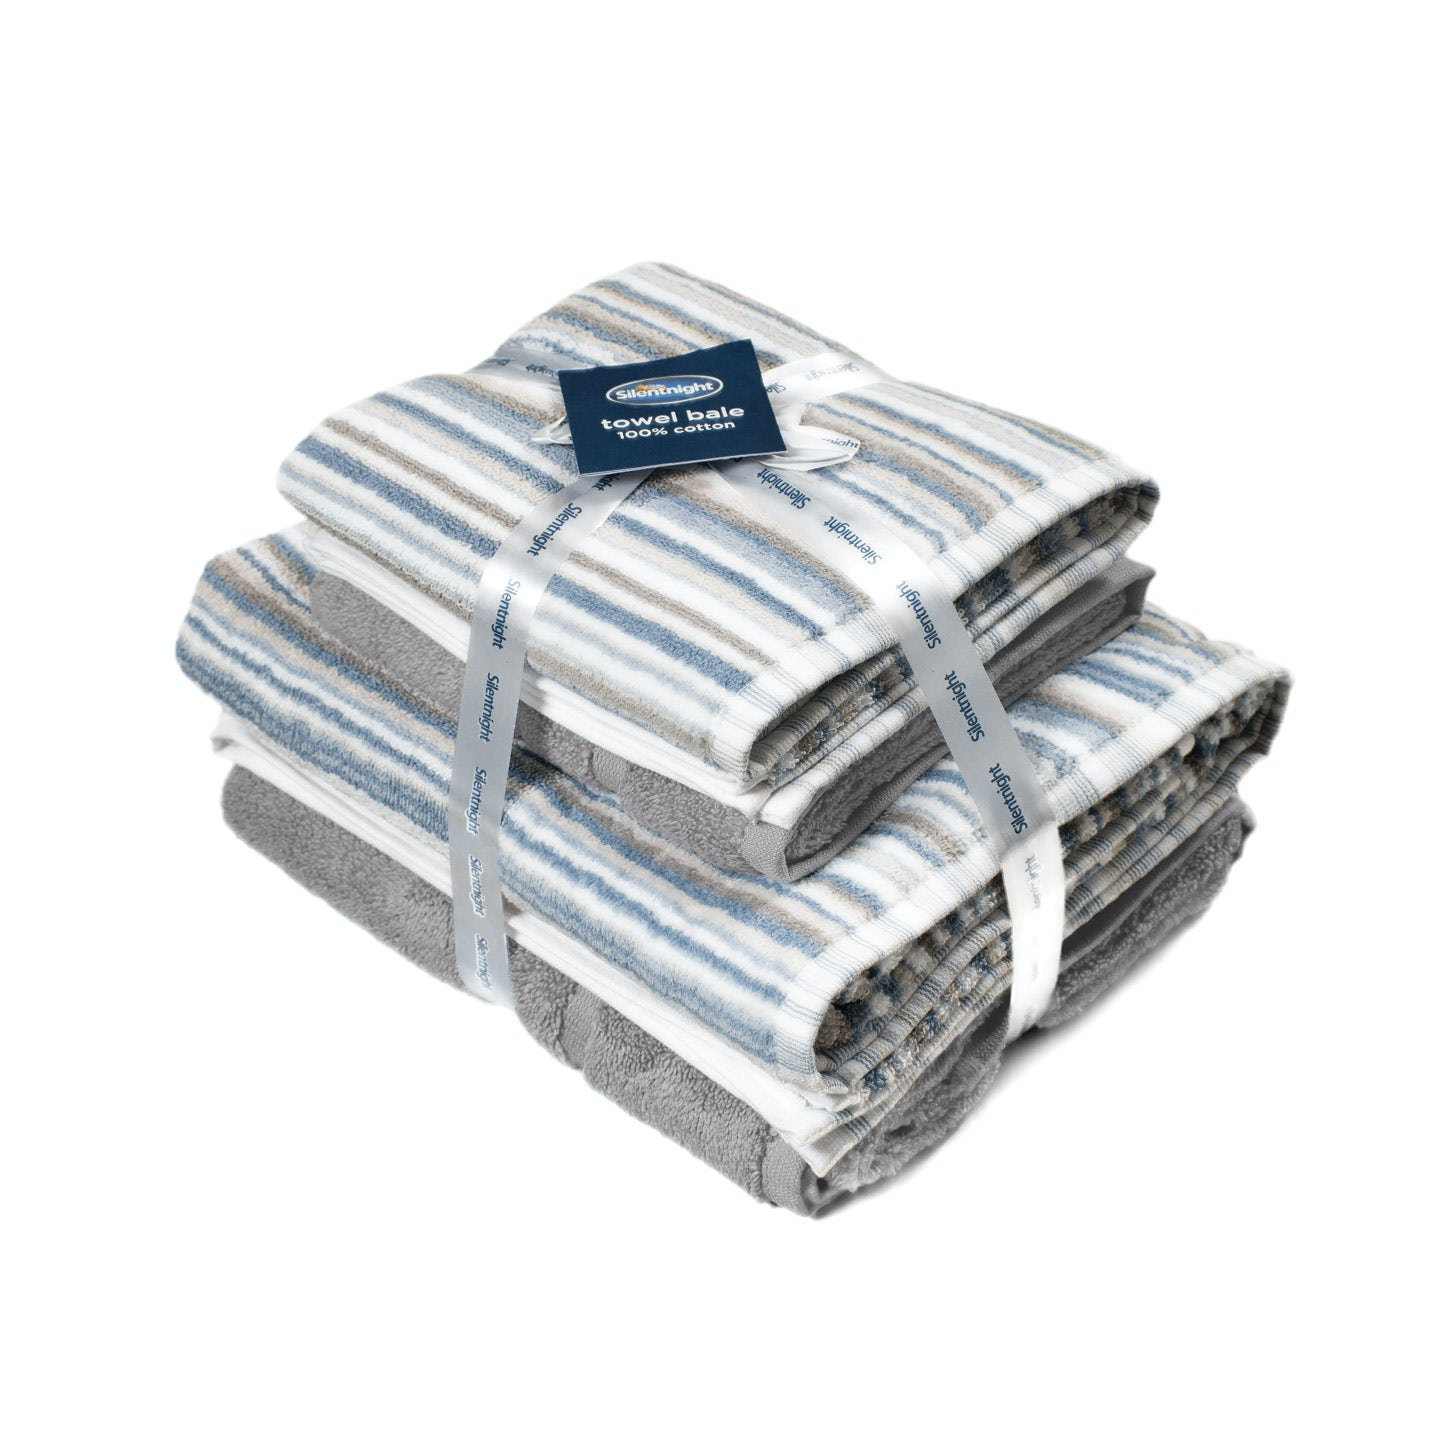 Silentnight Zero Twist 4 Piece Towel Bale